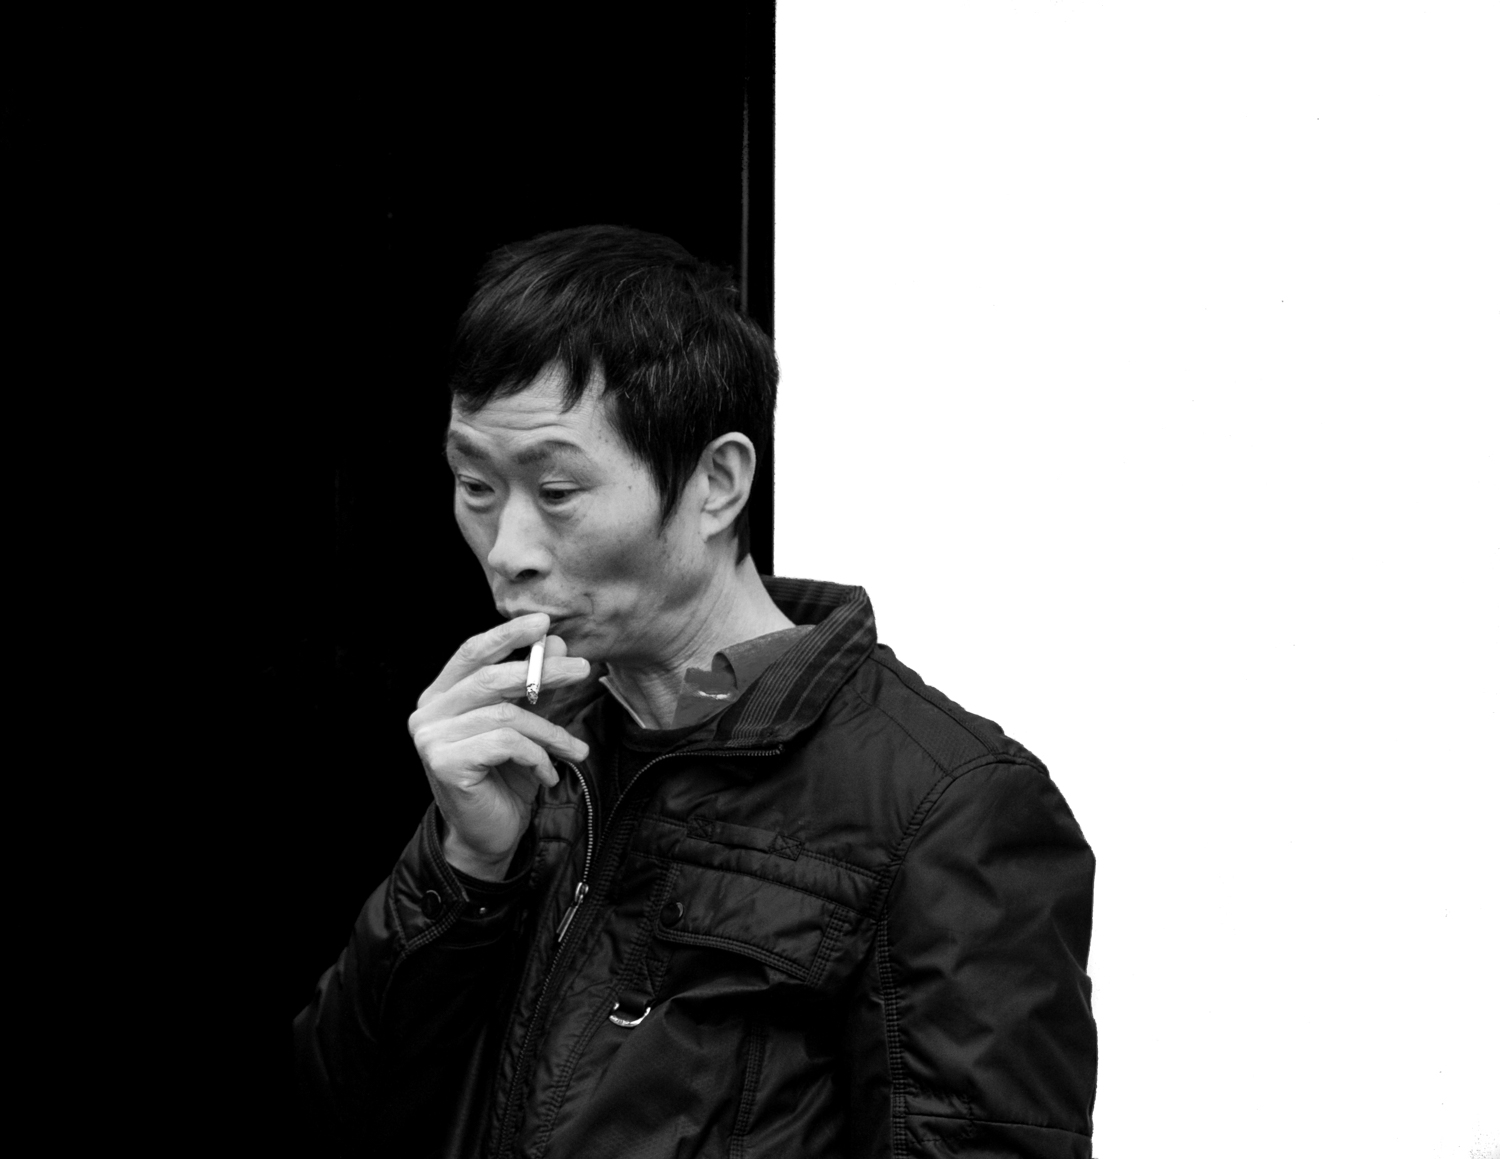 A man with a cigarette